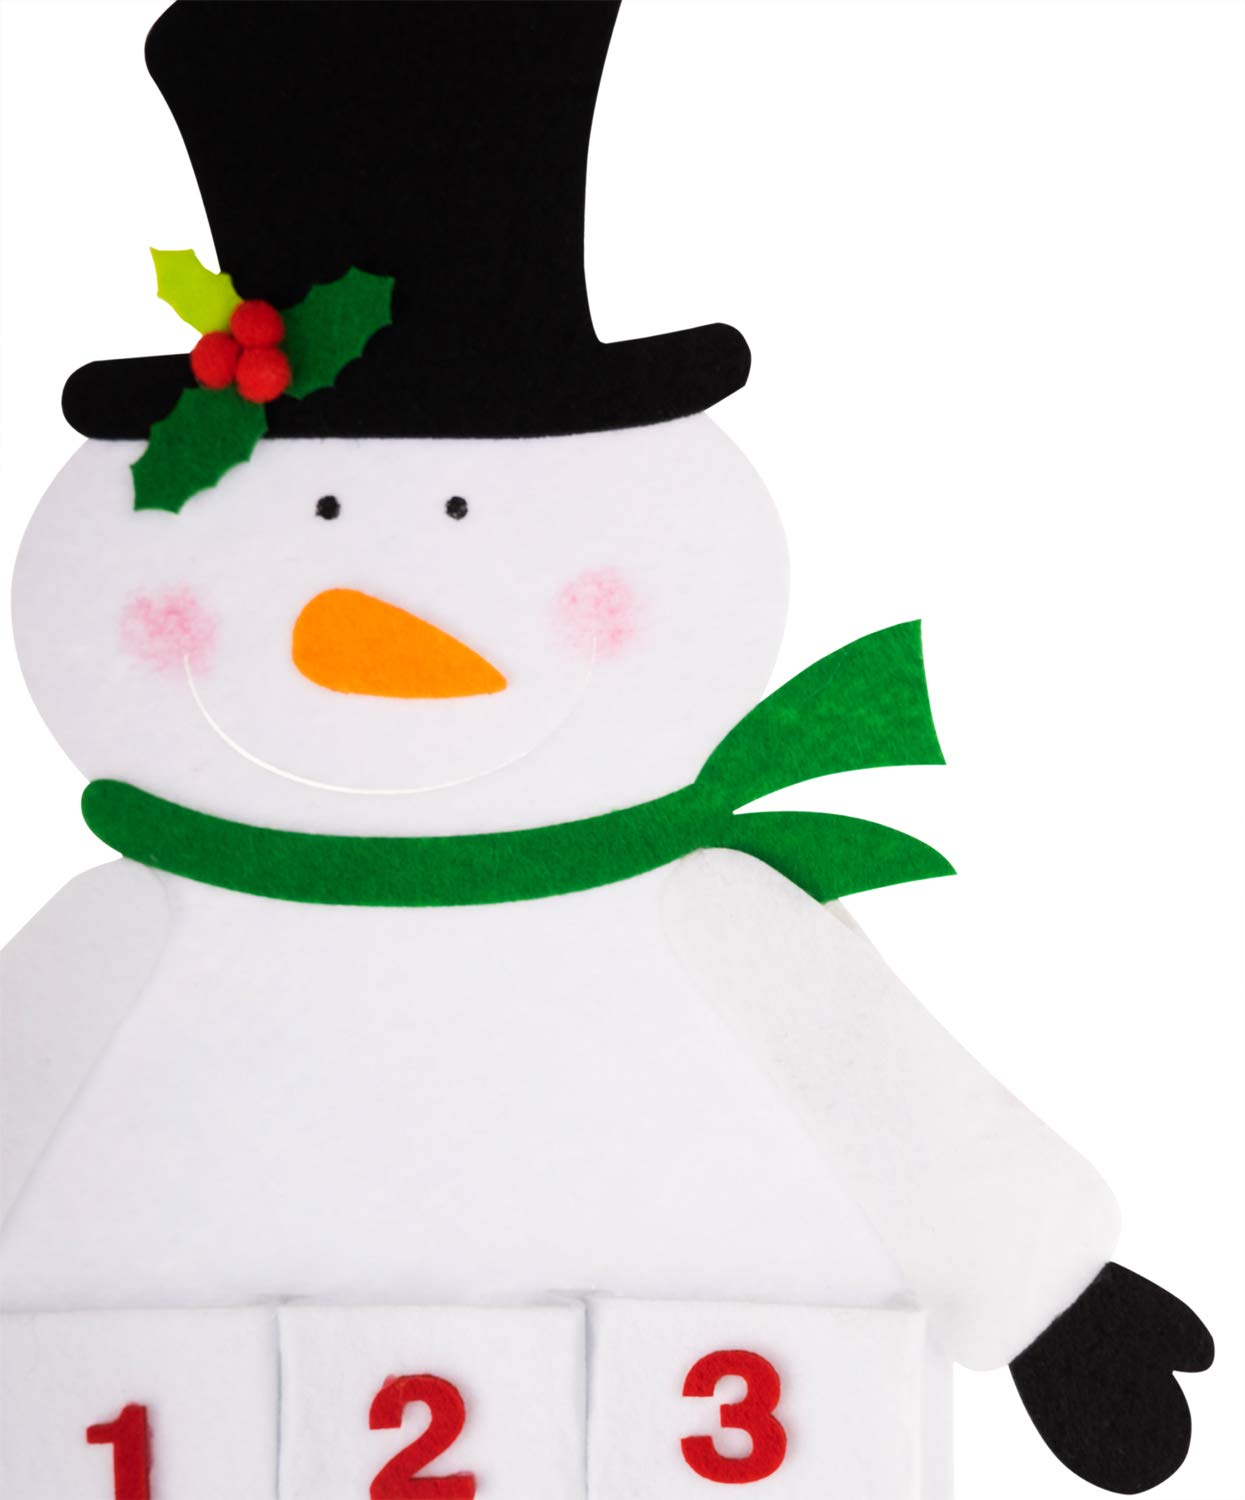 handrong Christmas 24 Day Advent Calendar Snowman Hanging Non-Woven Countdown Pockets Holiday D/écor Ornament for Kids Gifts Home Door Wall Office Decorations 29 Tall White